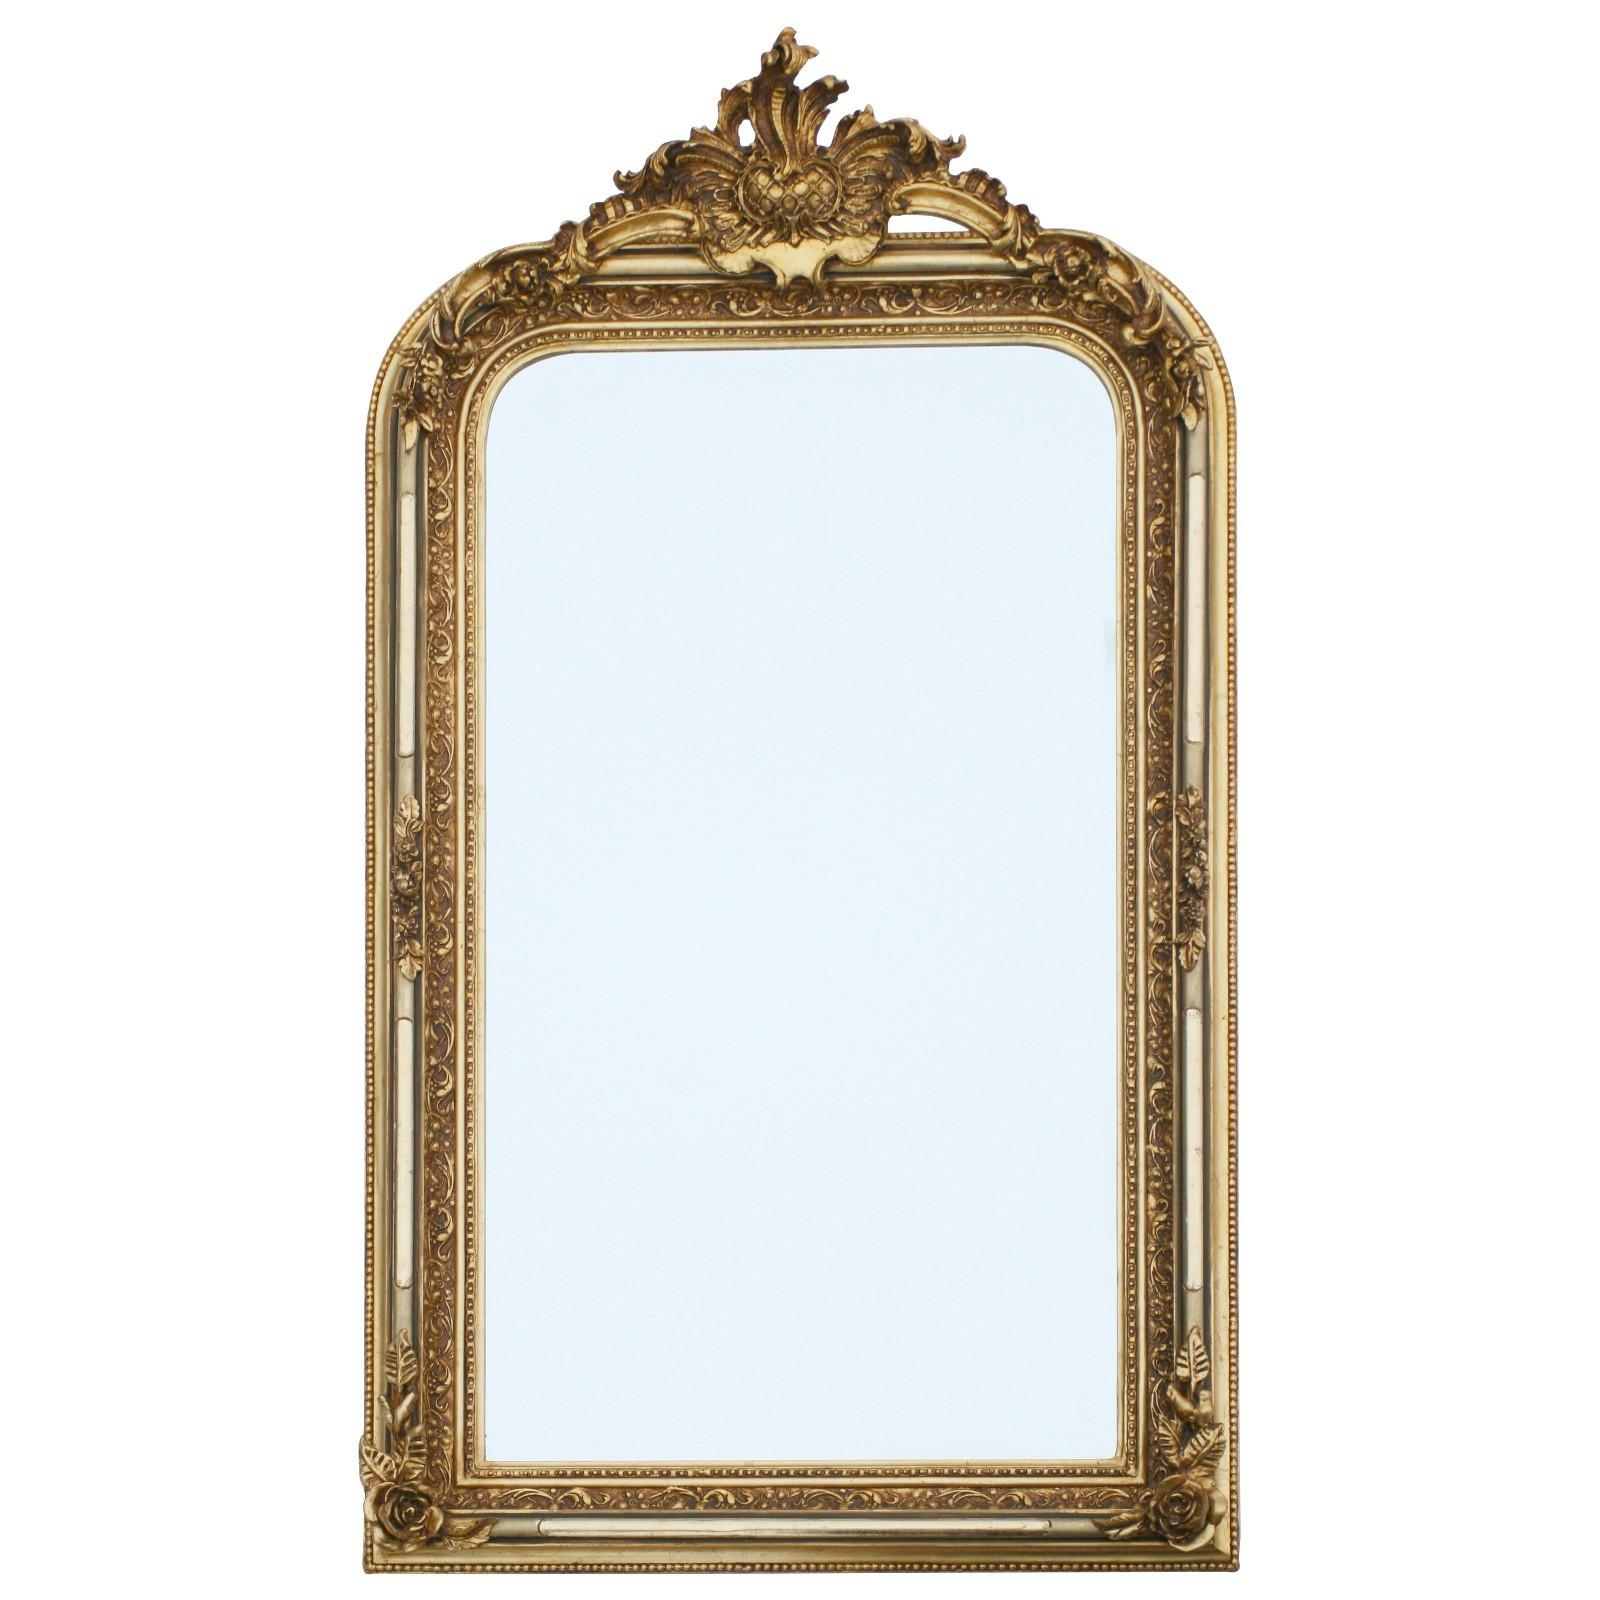 Wall Mirror Large Ostentatious Luxury Baroque Mirror With Bevelled With Regard To Large Baroque Mirror (View 7 of 20)